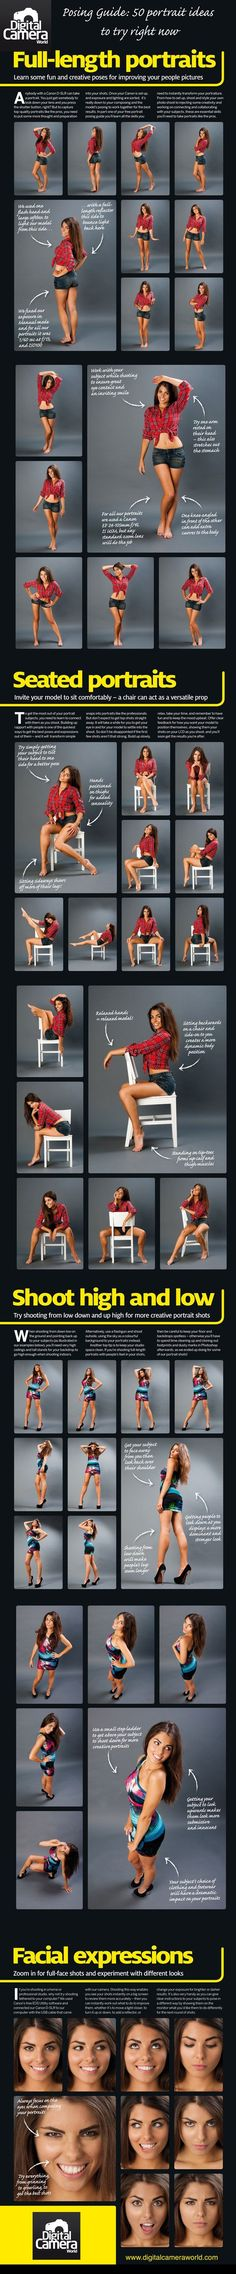 50 Portrait Photography Ideas ...now go forth and share that BOW DIAMOND style ppl! Lol ;-) xx: